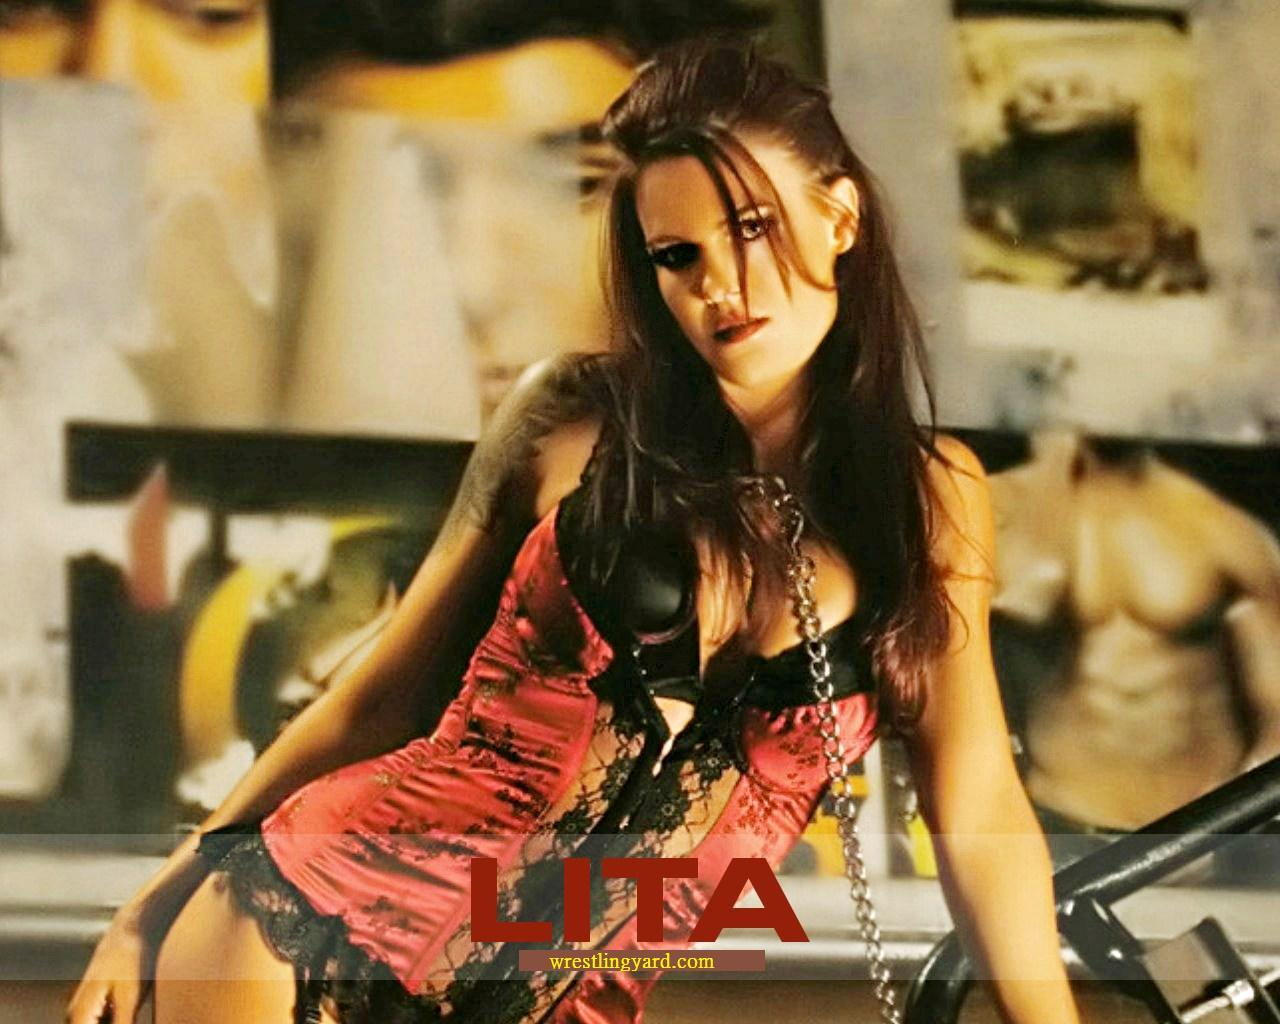 Lita hot and sexy pics, photos and wallpapers